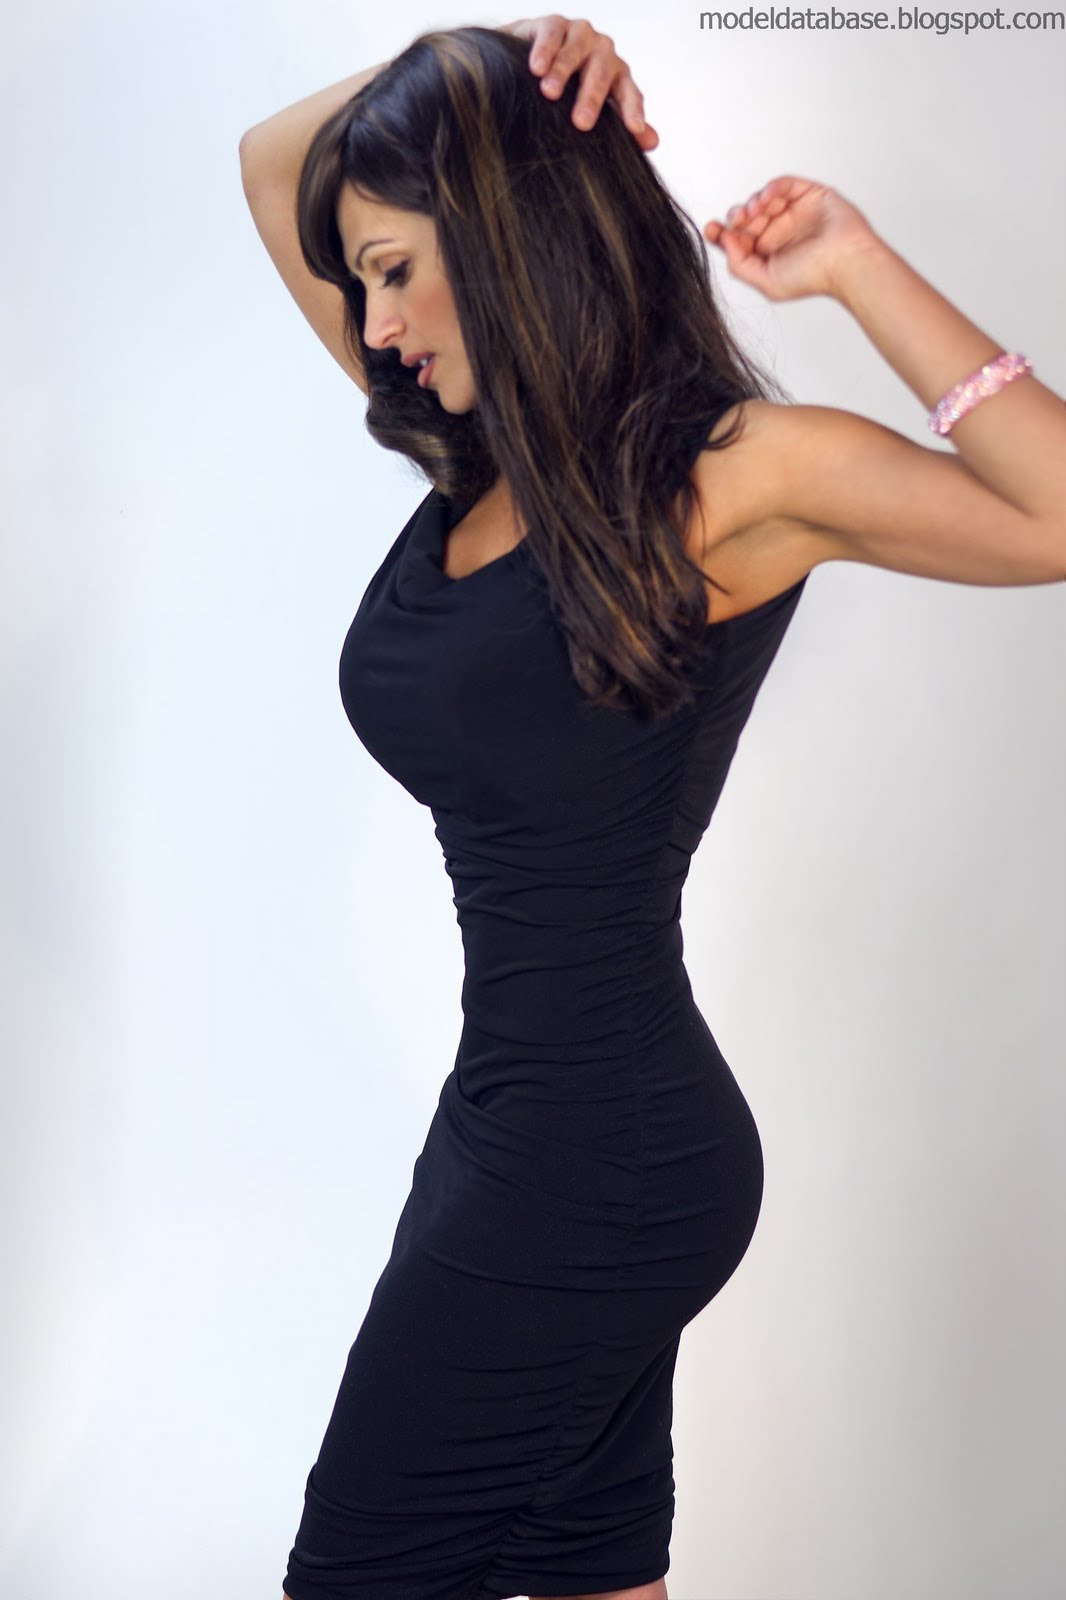 denise milani in a dress - photo #11